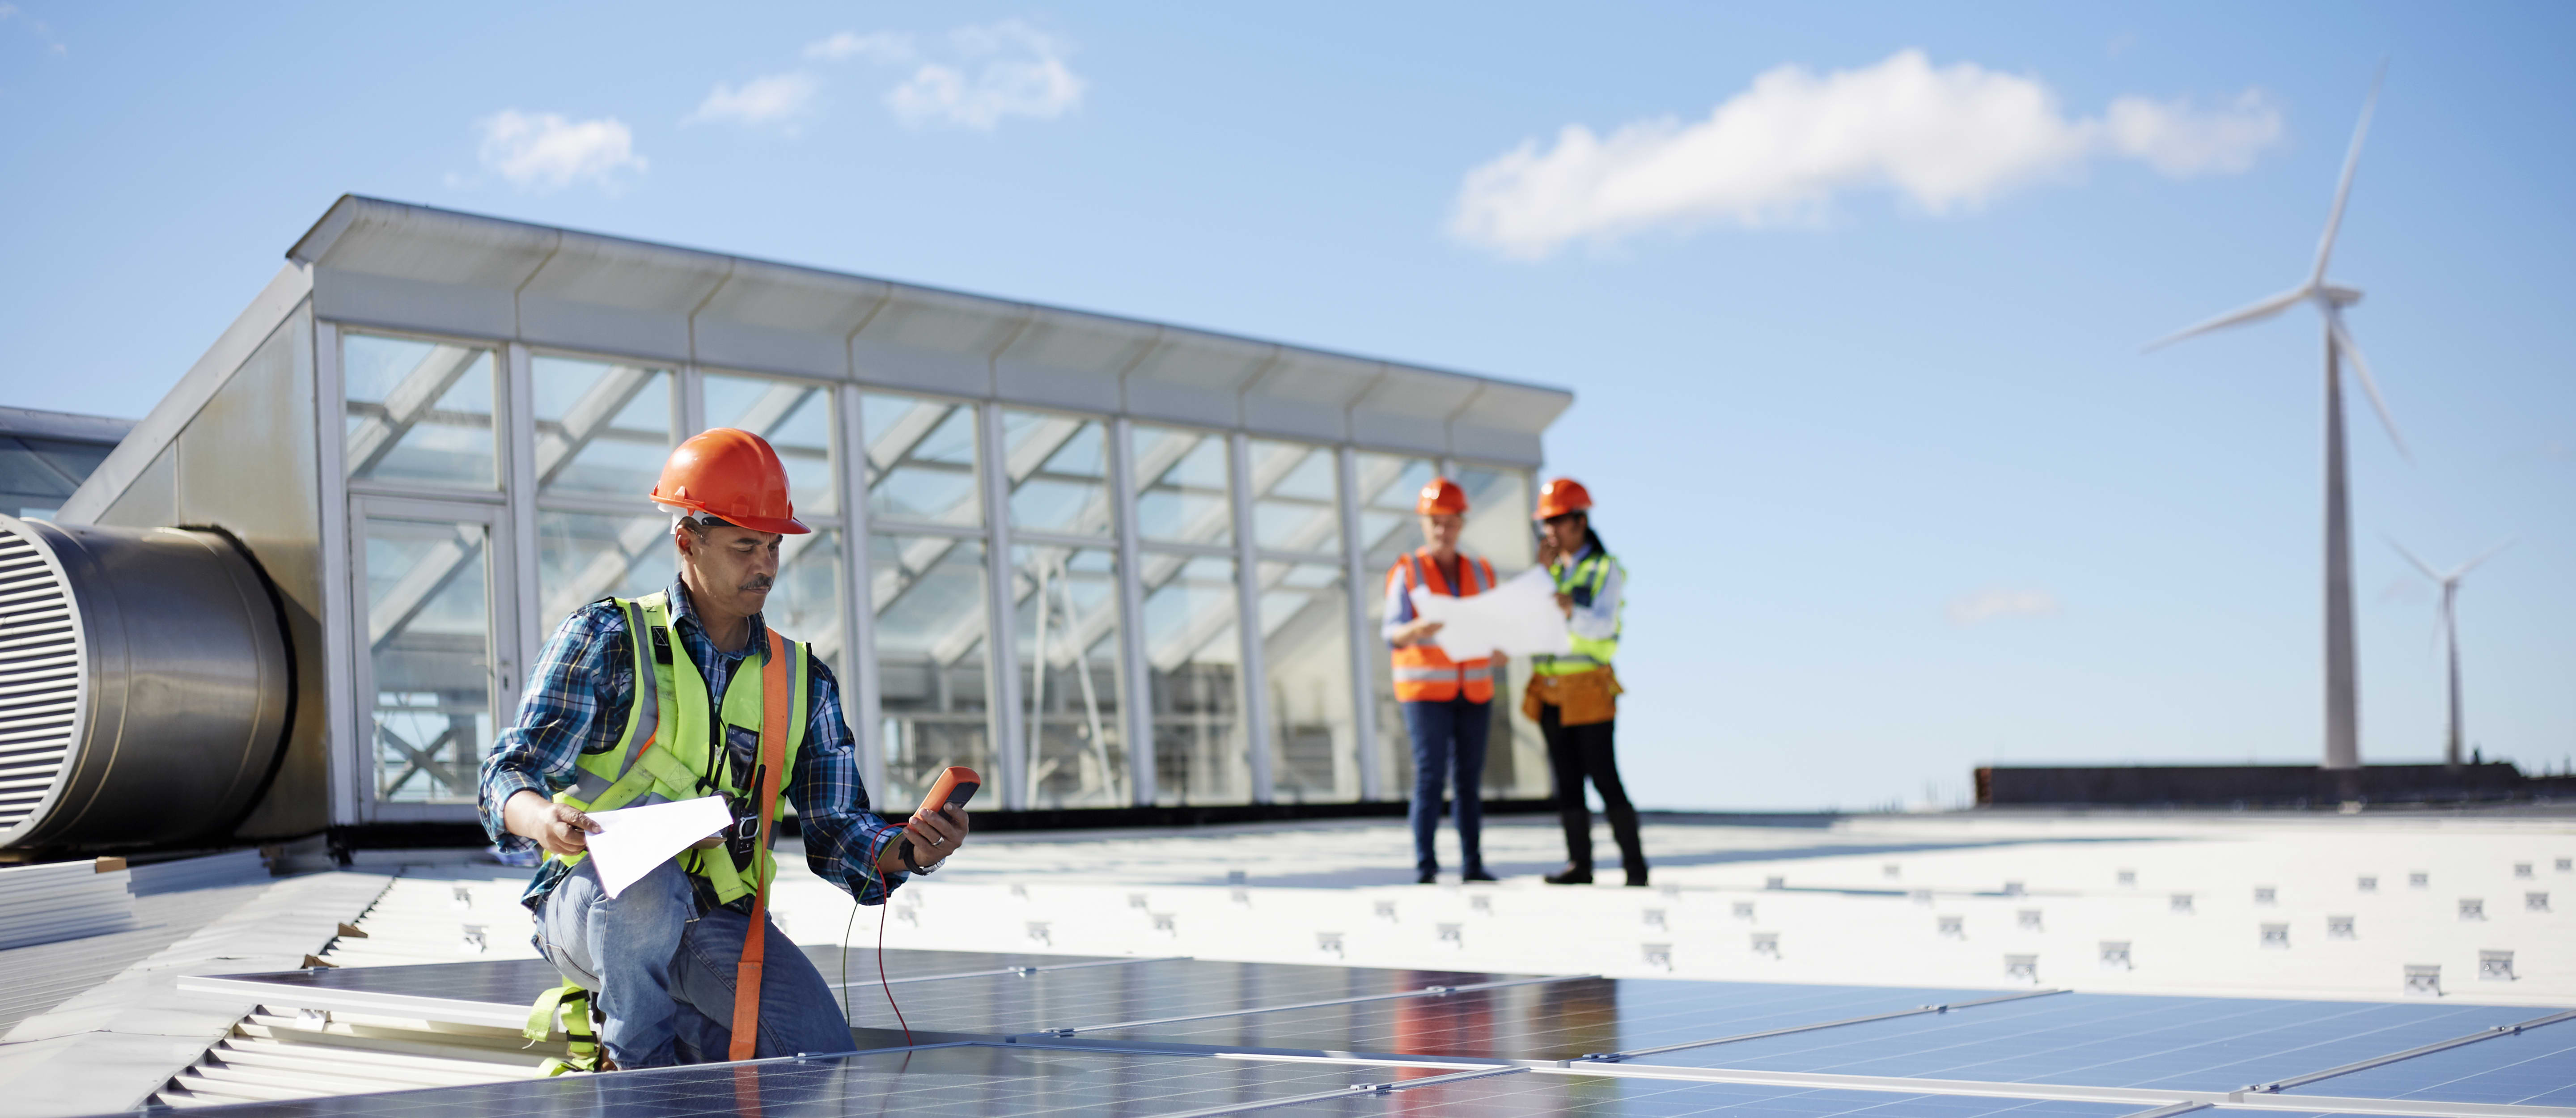 A group of engineers in hard hats test solar panels